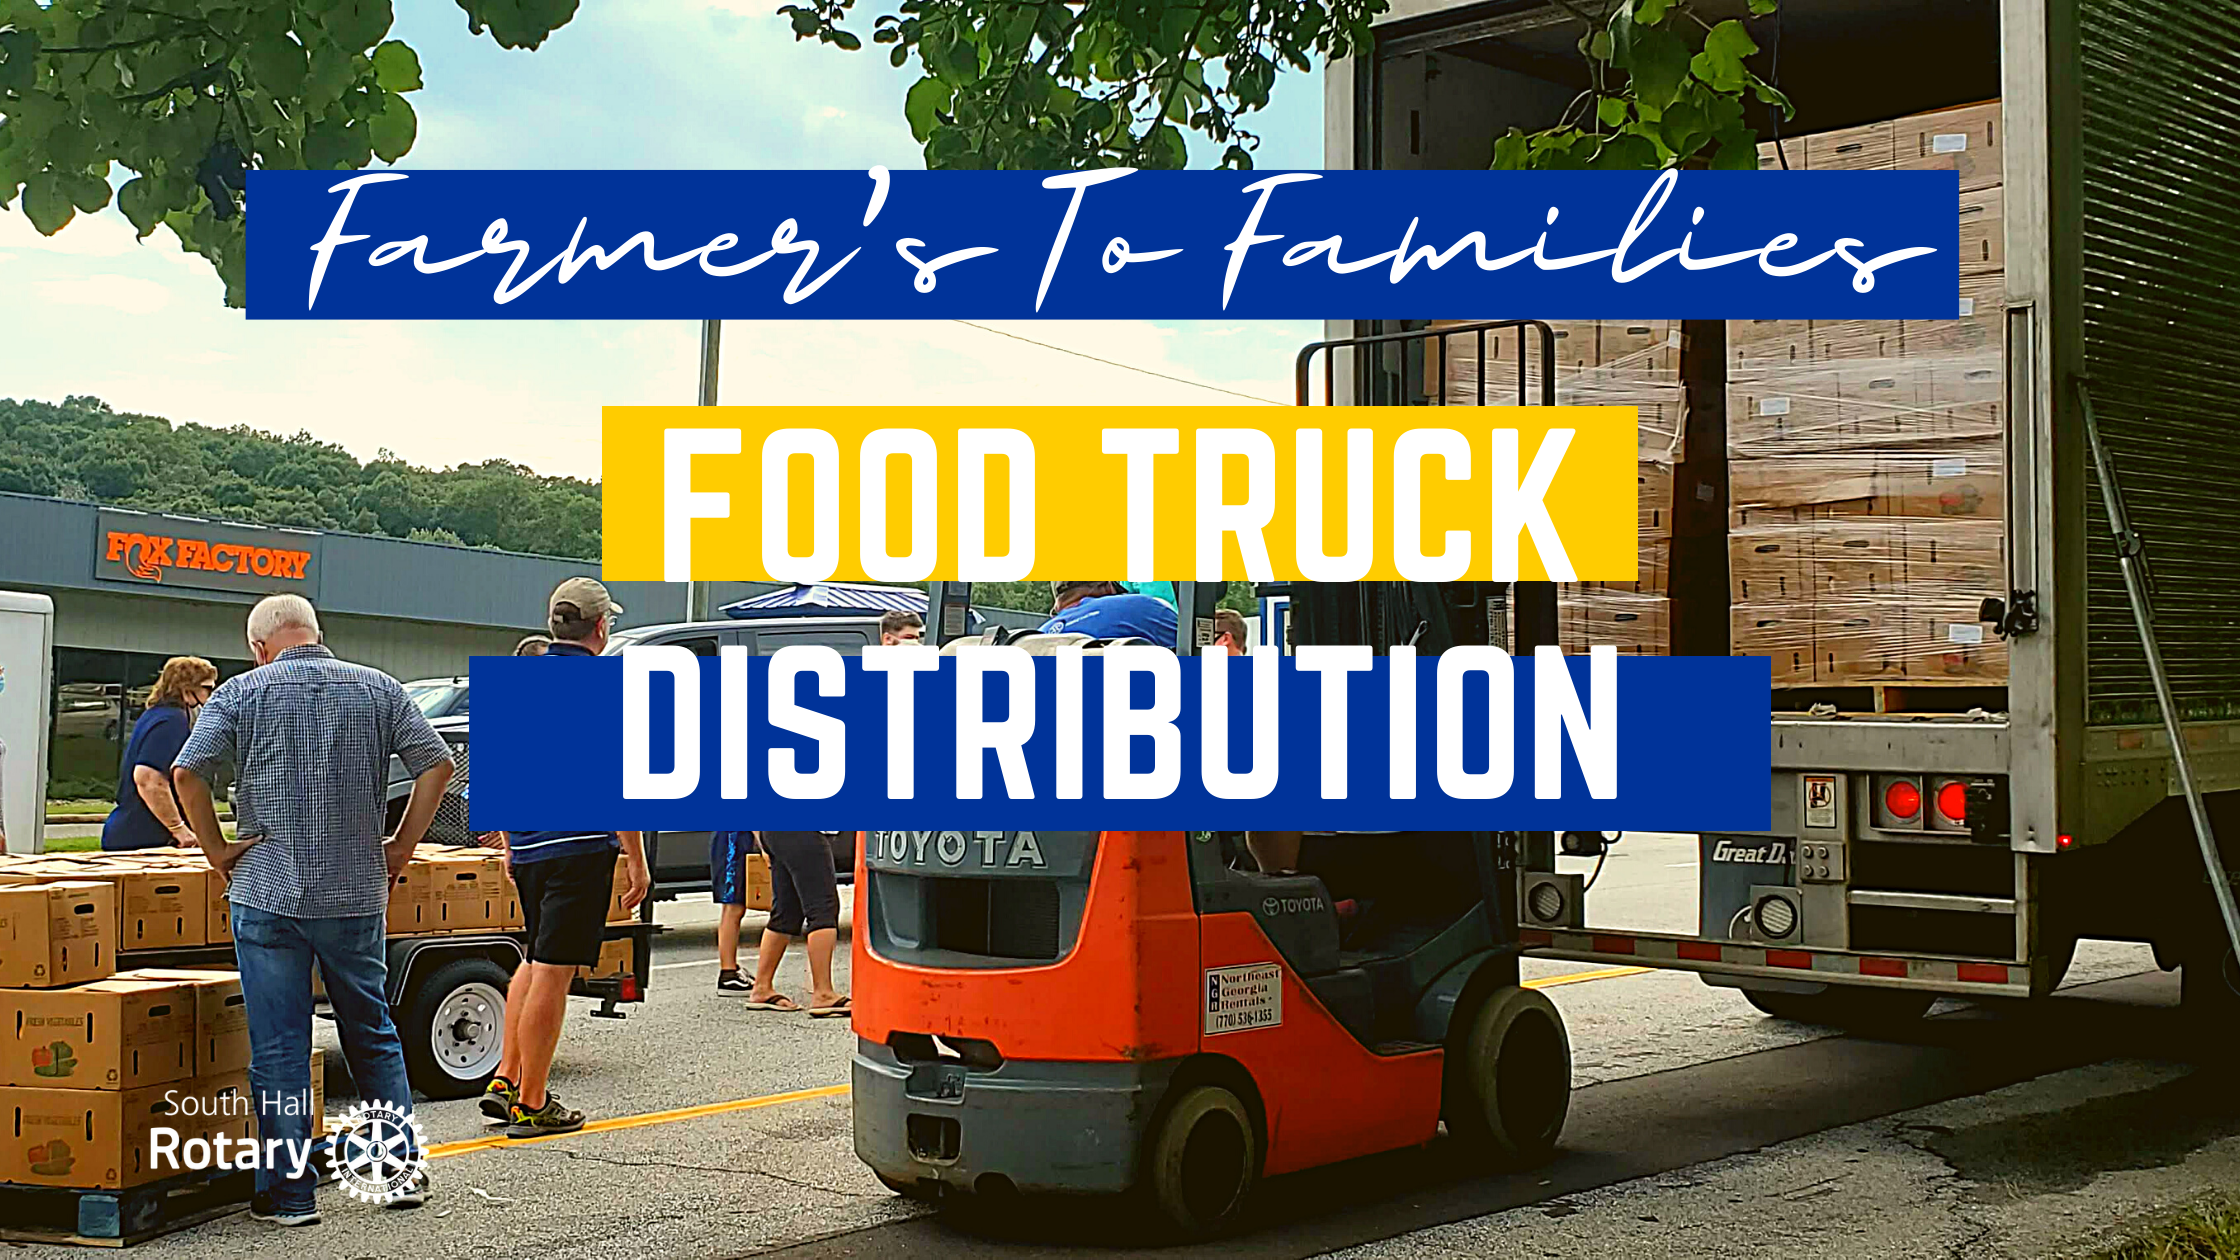 Farmers to Families Food Truck